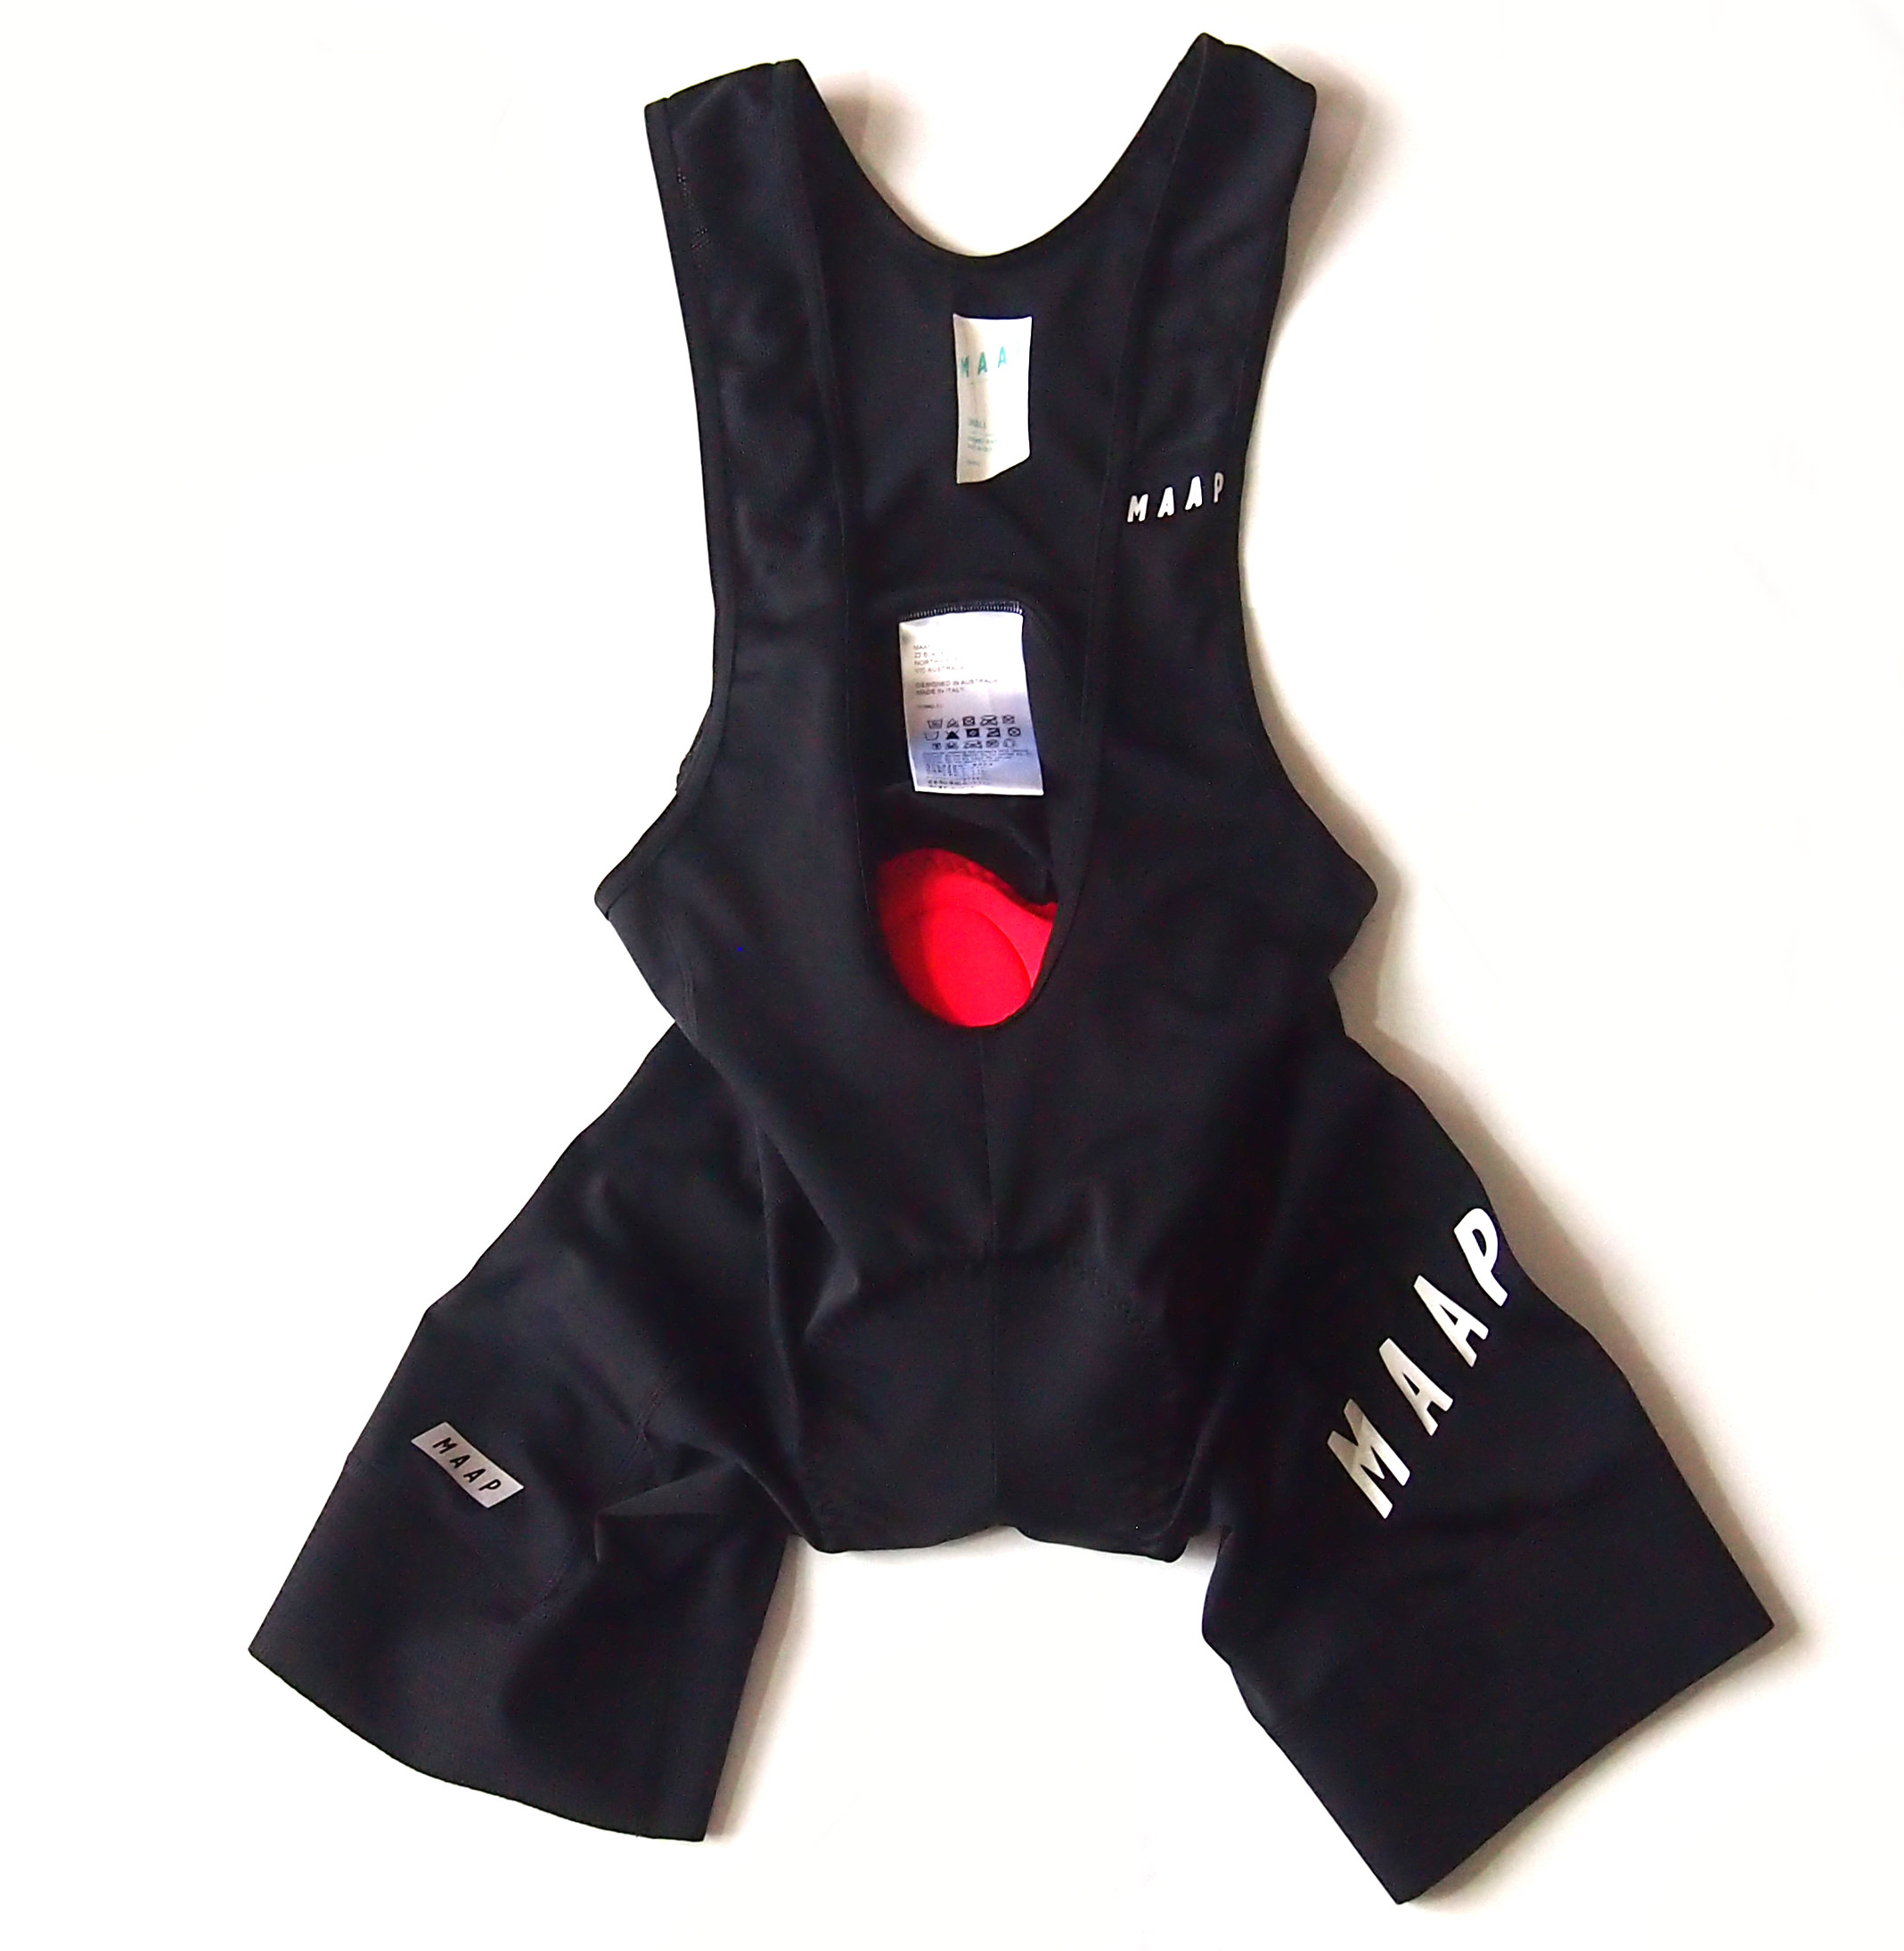 MAAP Team Bib Short 2.0 全体